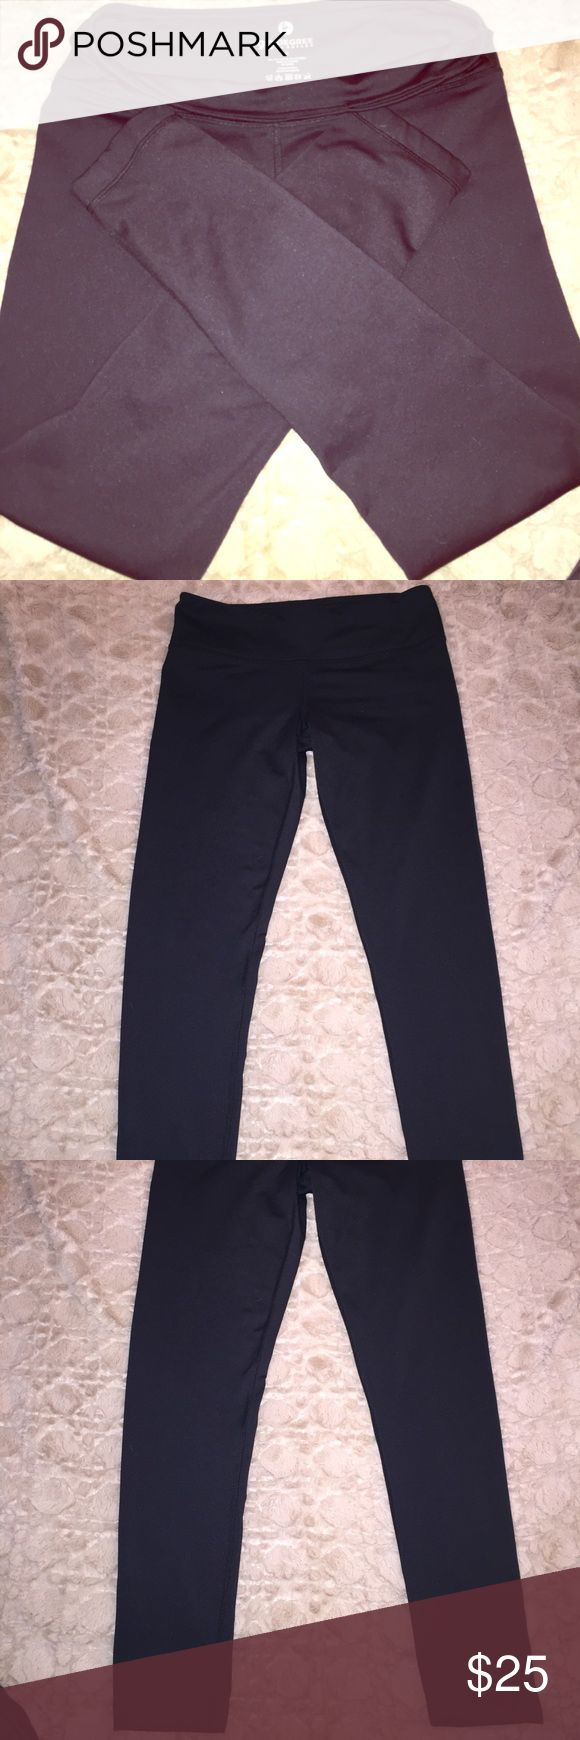 90 degrees thick stretchy yoga pants! These yoga pants are perfect for winter! They are a thick material with a fuzzy inside lining! Size medium! All black! 90 Degrees Pants Leggings